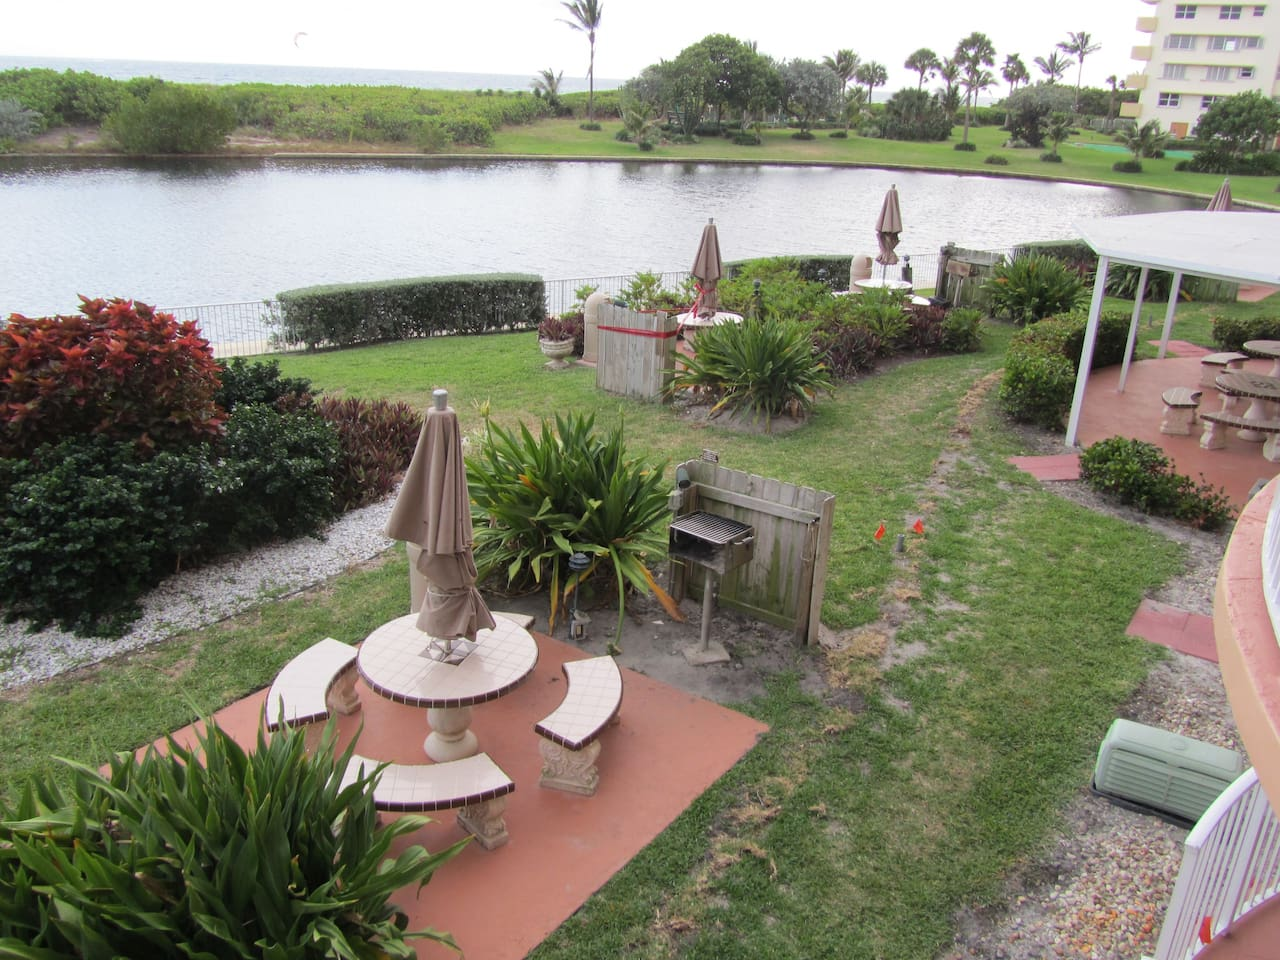 Beach front Condo with pool, hot tub,putting green - Resorts for ...